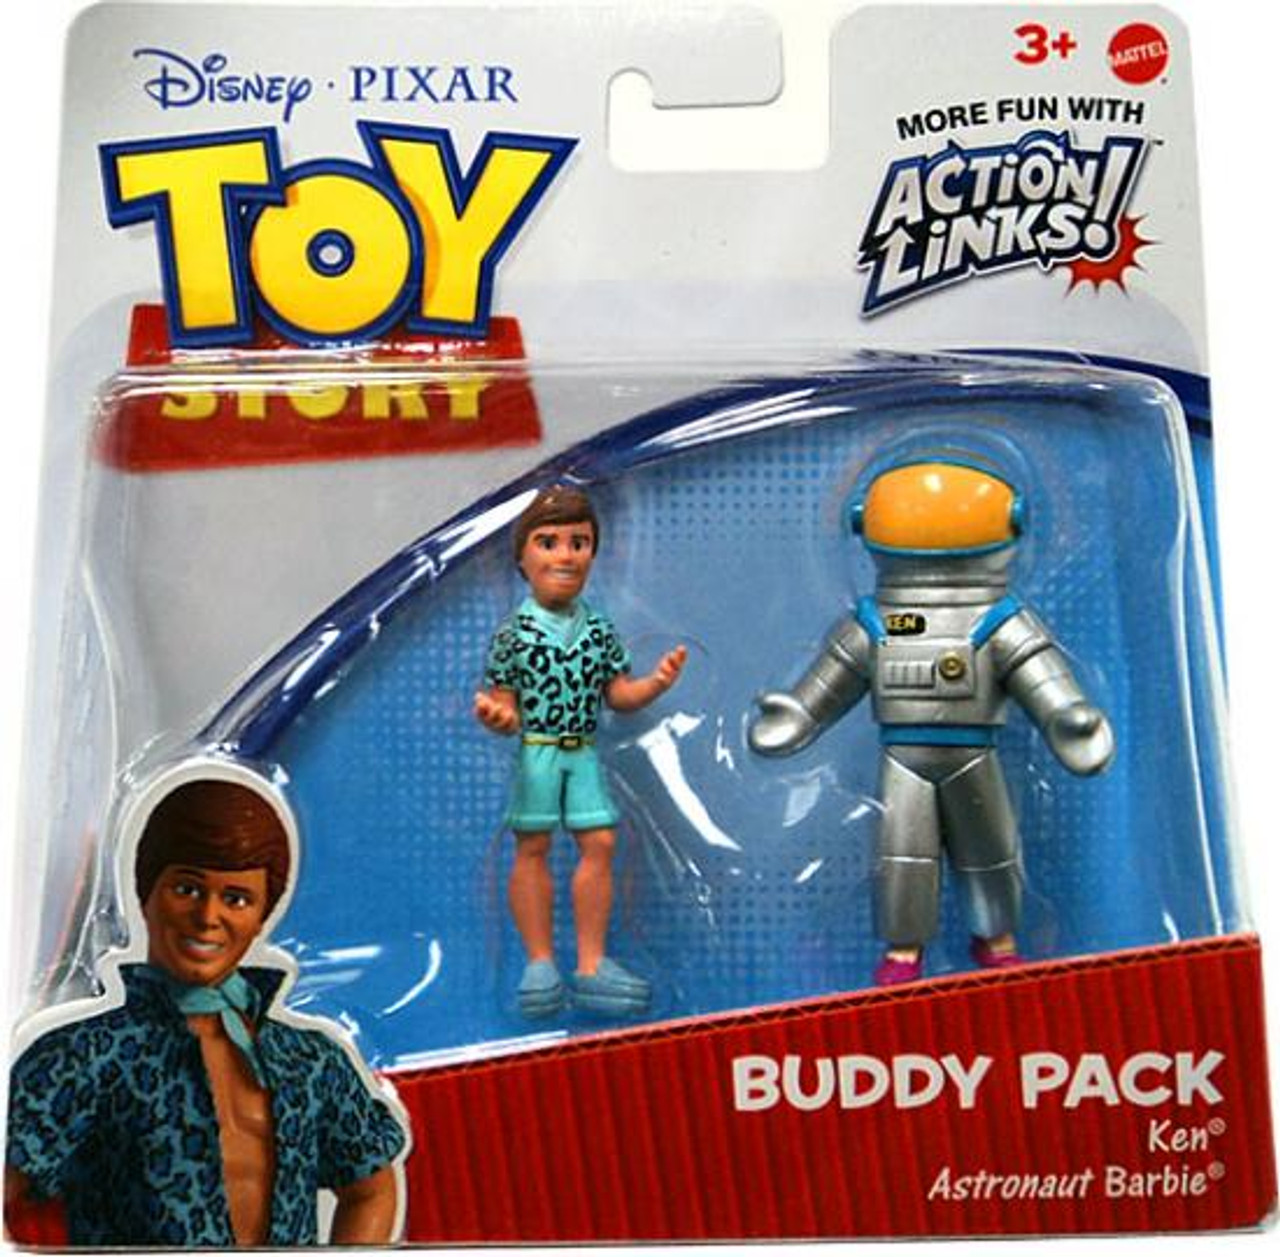 Toy Story Action Links Buddy Pack Ken & Astronaut Barbie Exclusive Mini Figure 2-Pack